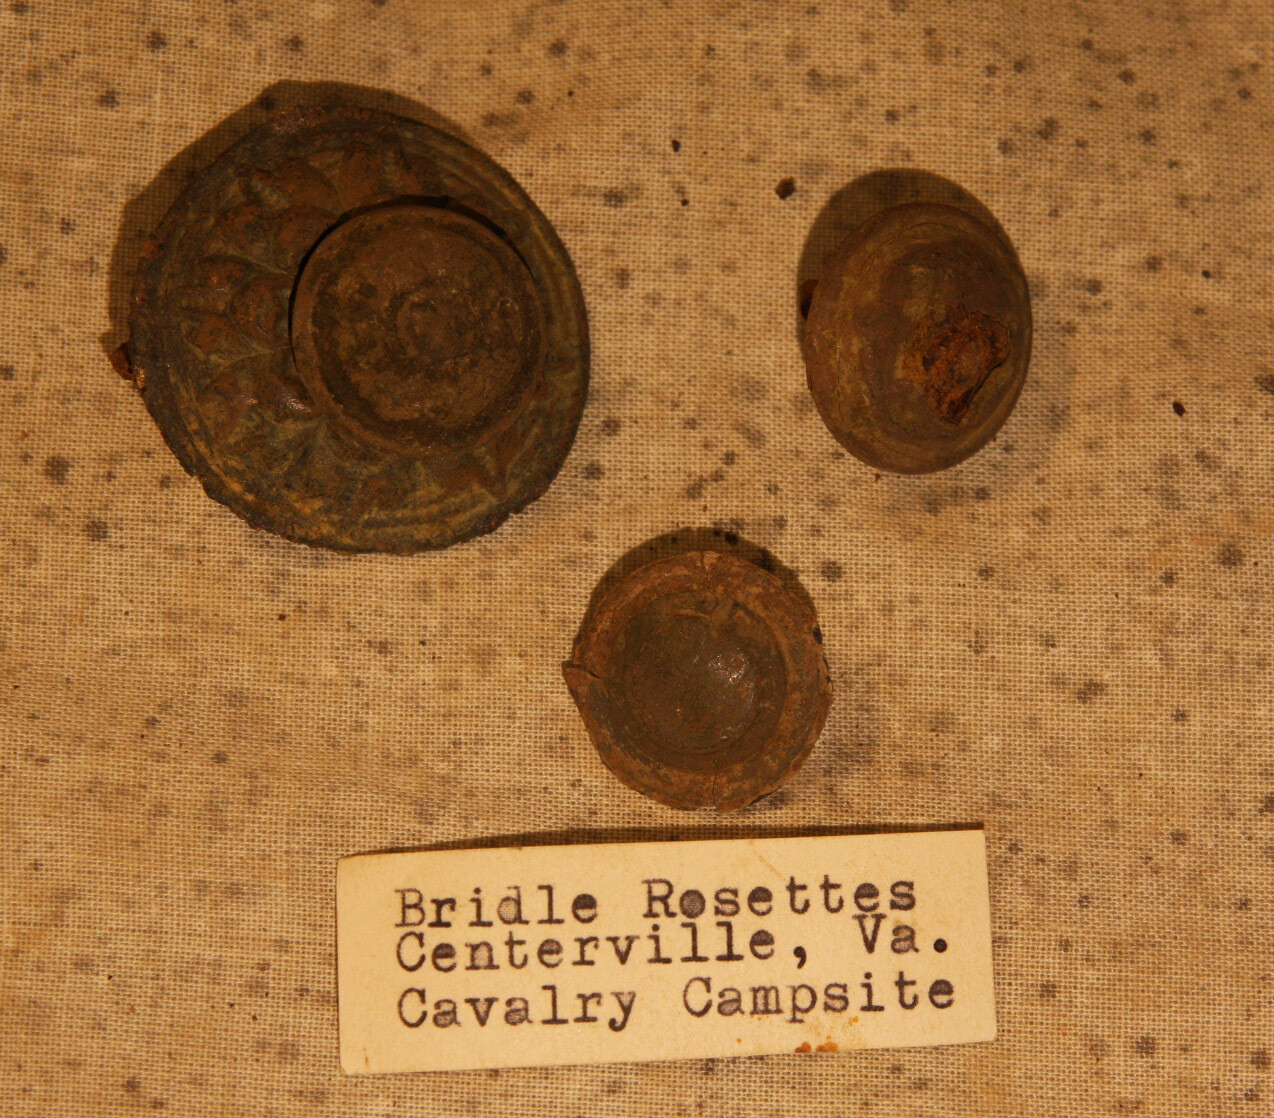 JUST ADDED ON 6/19 - CENTREVILLE, VIRGINIA / BULL RUN AREA - 3 Cavalry Artifacts - Rosette? - with Original Collection Label